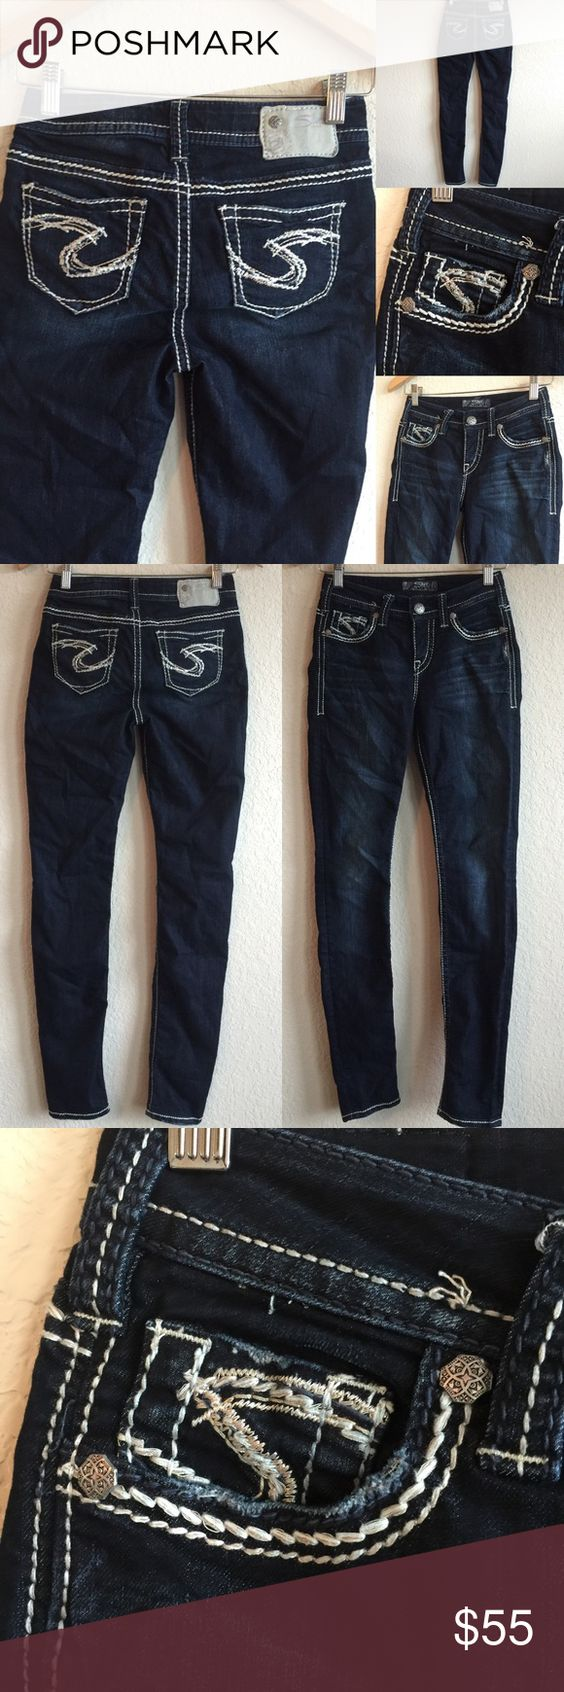 SILVER 💗 Super Skinny Jeans, Dark Sz Excellent pre-loved condition!  Would be gorgeous with boots, heels, or flats!  💗💗💗 Silver Jeans Jeans Skinny